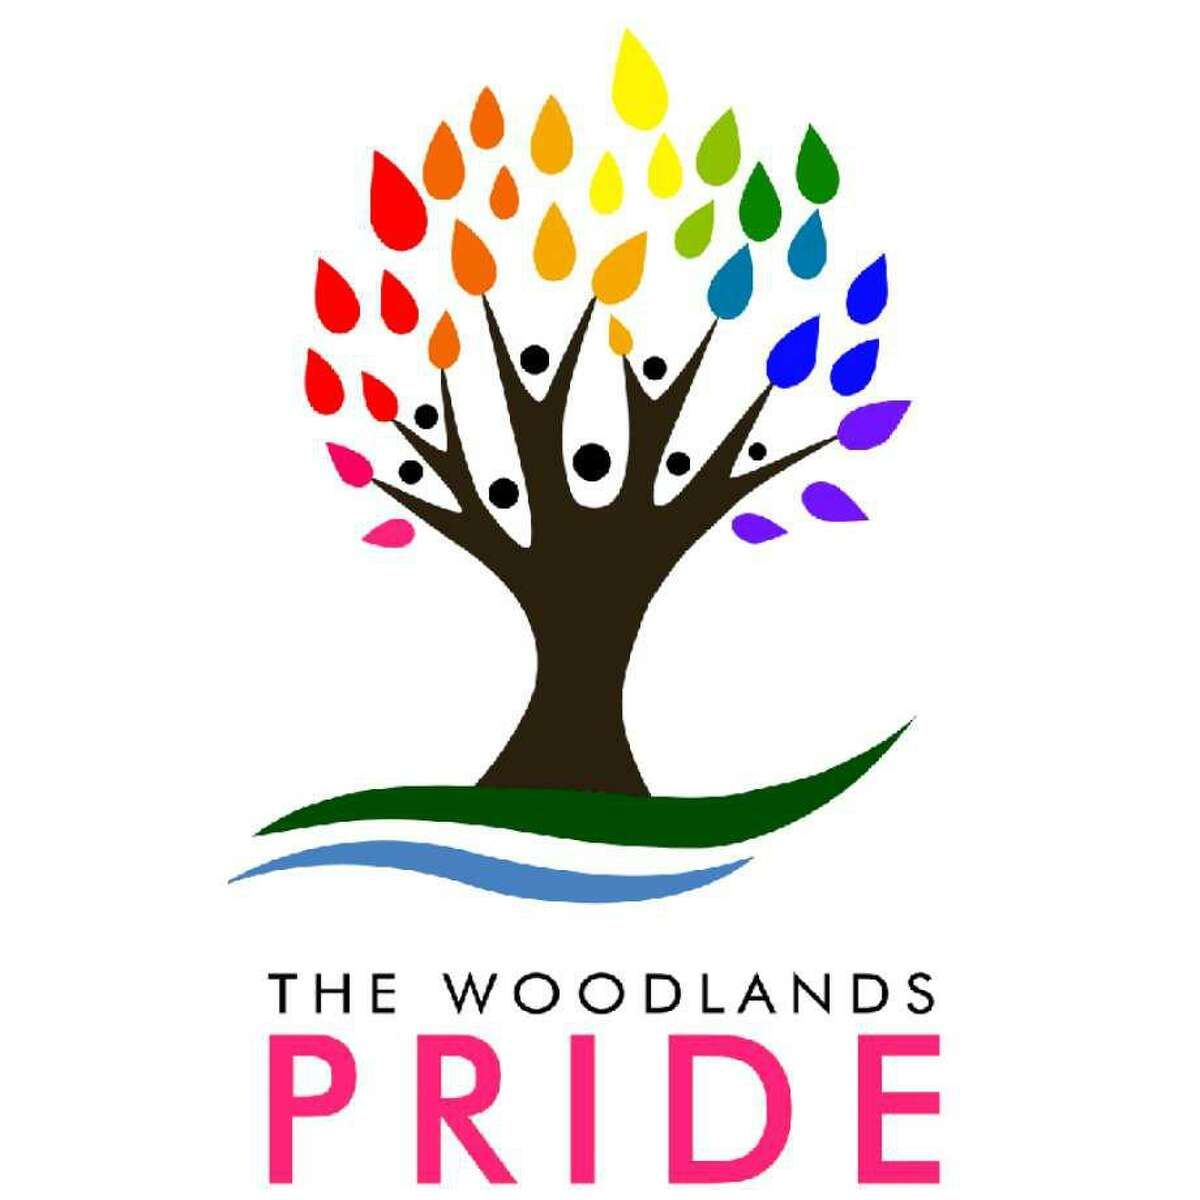 The Woodlands Pride, formed in April, aims to build bridges between the LGBTQIA community and others throughout Montgomery County. After two successful festivals in 2018, when more than 4,000 people attended, and in 2019, when attendance surpassed 5,000 people, organizers are planning for third festival which will be hosted on Saturday, Sept. 26, 2020, in Town Green Park.